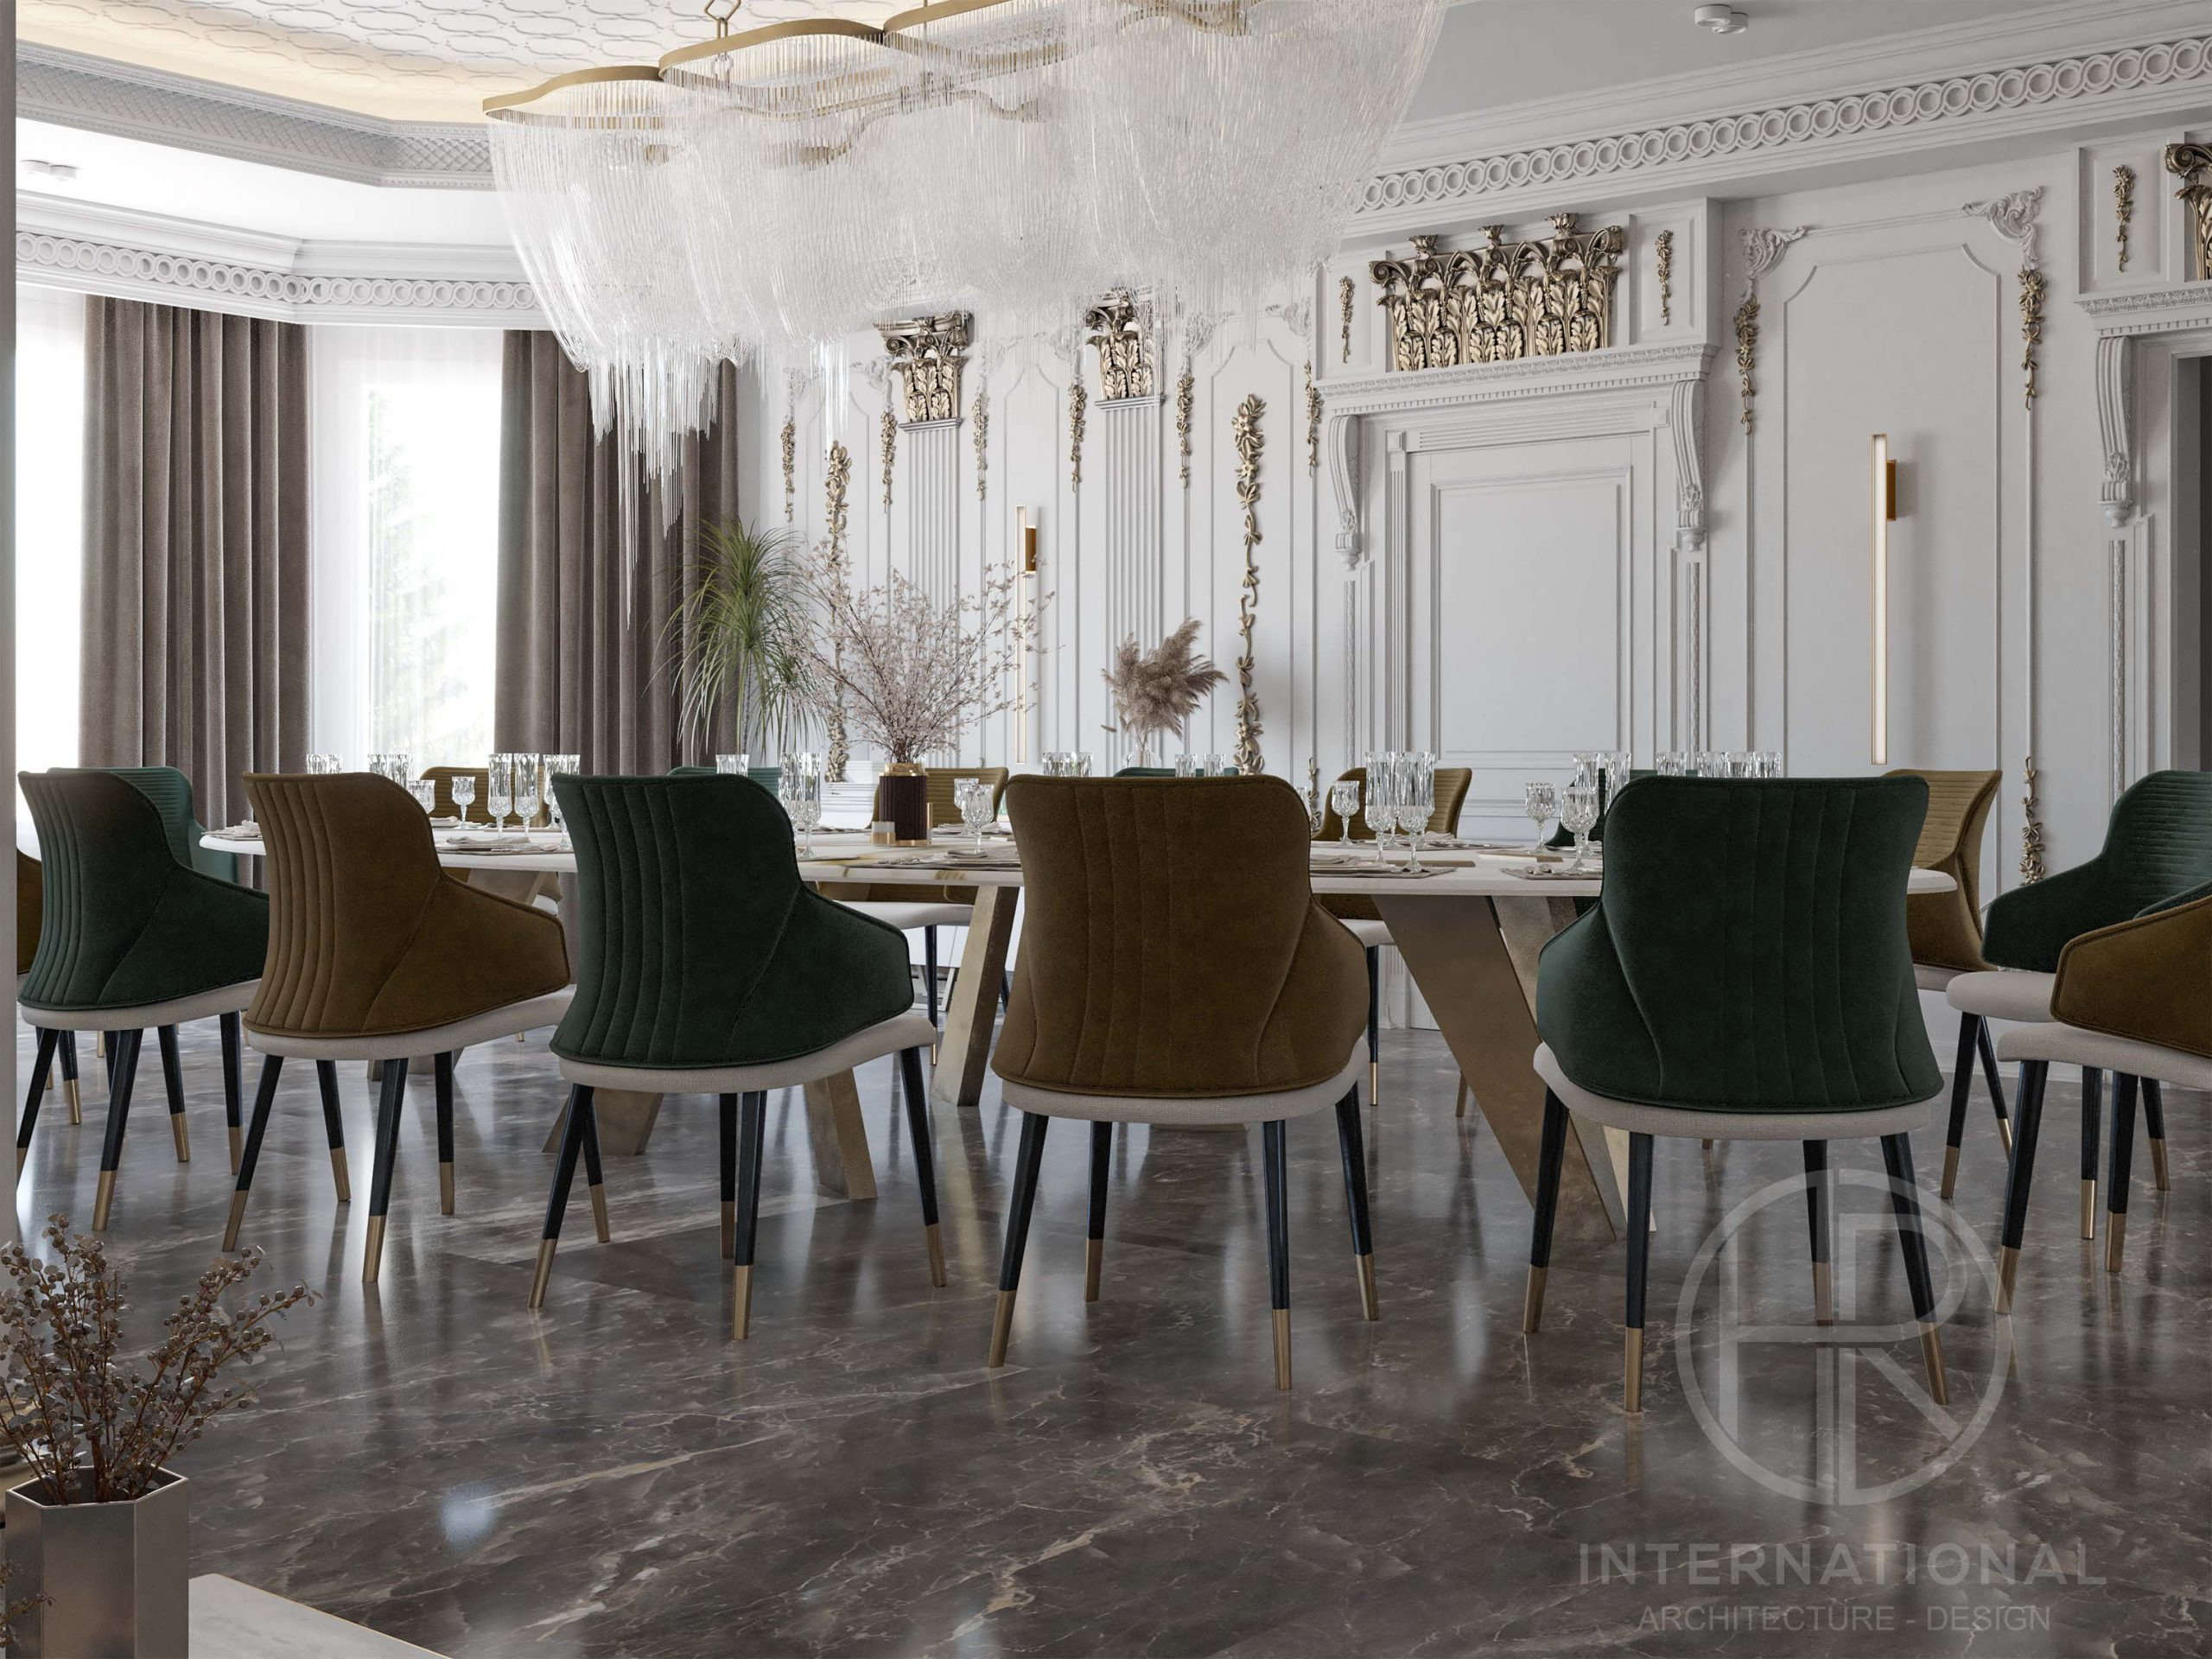 DELUX DINING ROOM - DINING ROOM - TABLE